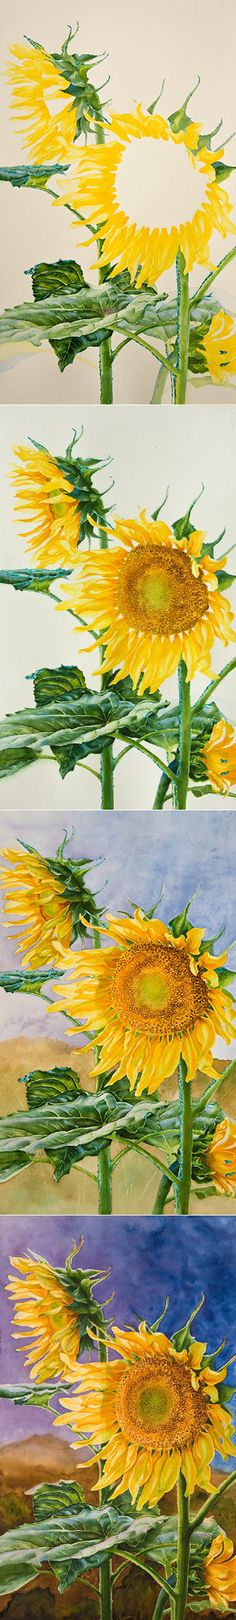 Watercolor Painting Demonstration of Sunflowers by Richland, WA Artist Lisa Hill